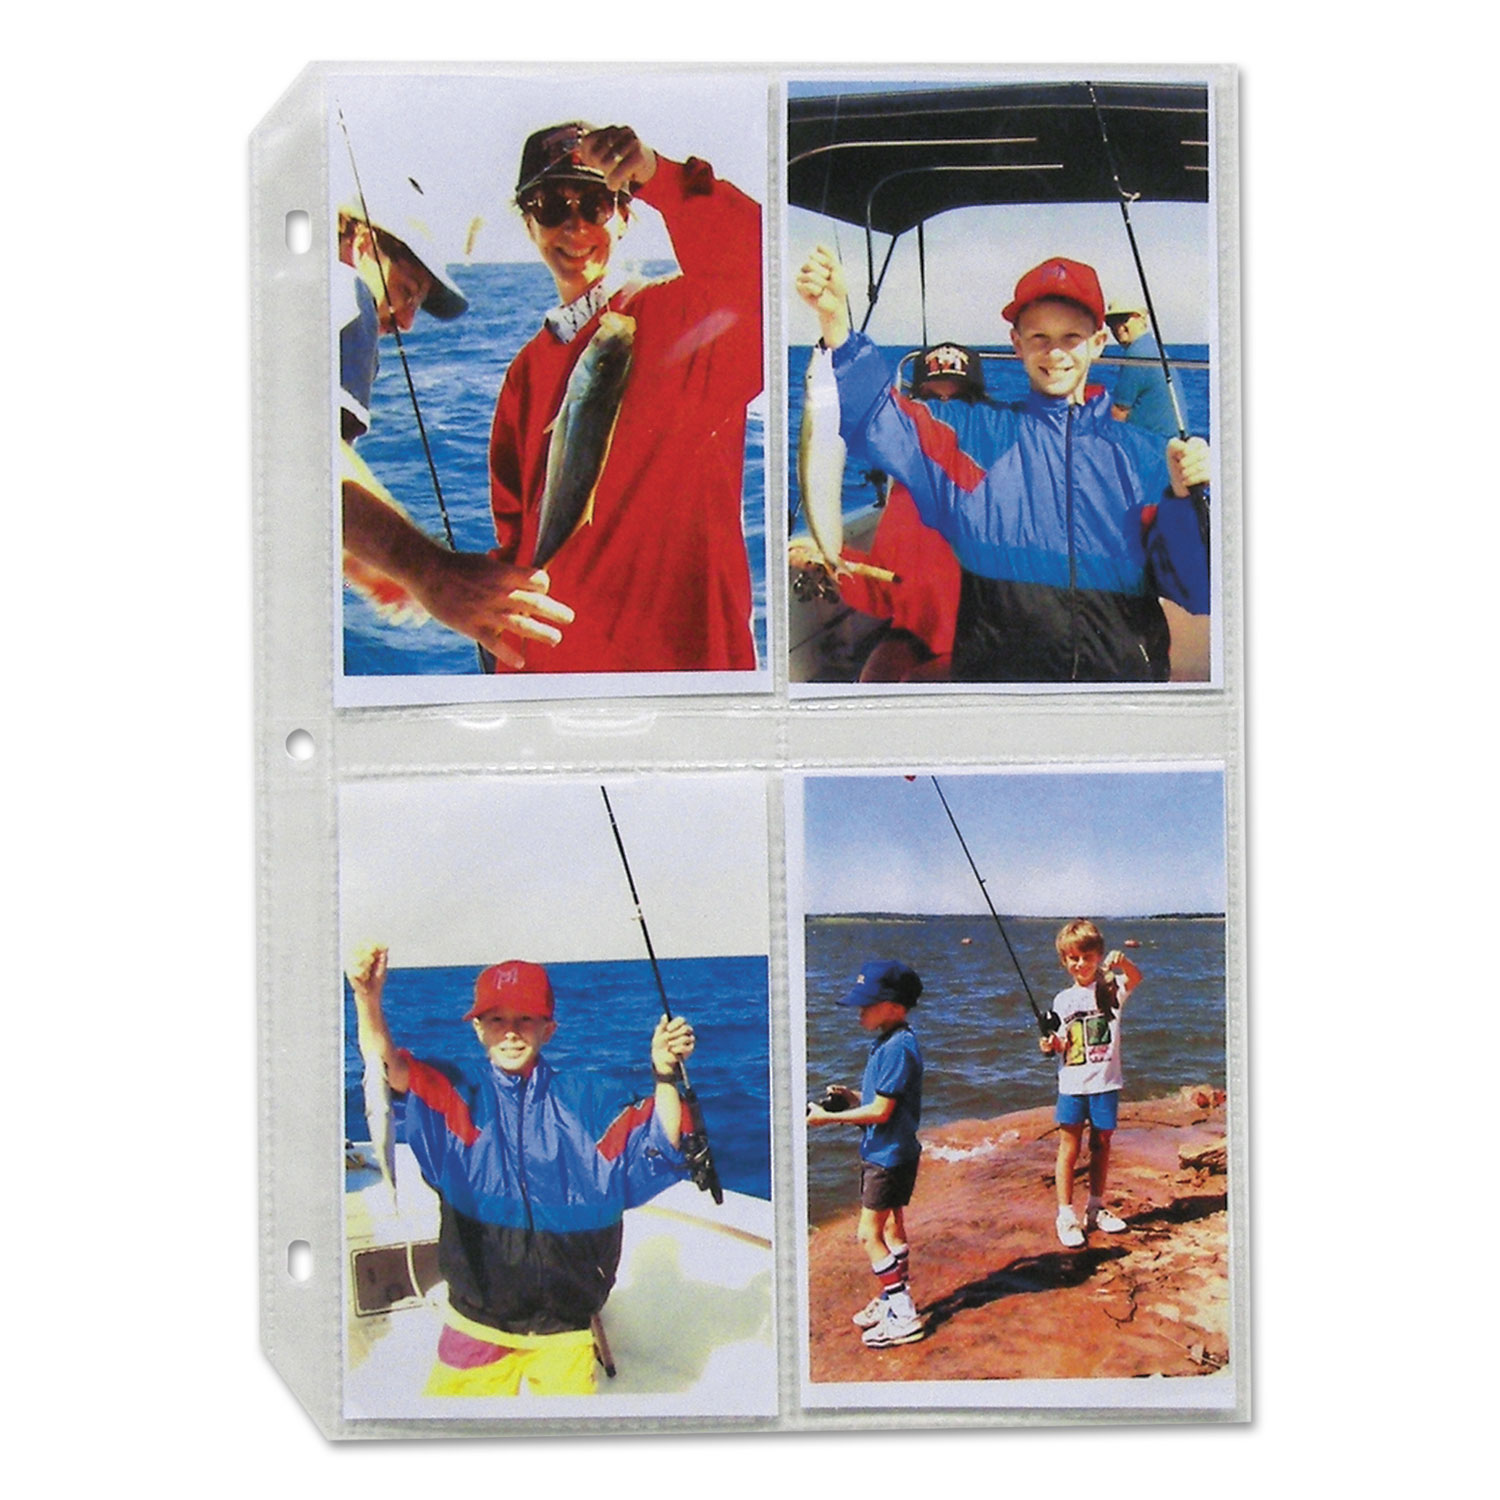 Clear Photo Pages for 8, 3-1/2 x 5 Photos, 3-Hole Punched, 11-1/4 x 8-1/8